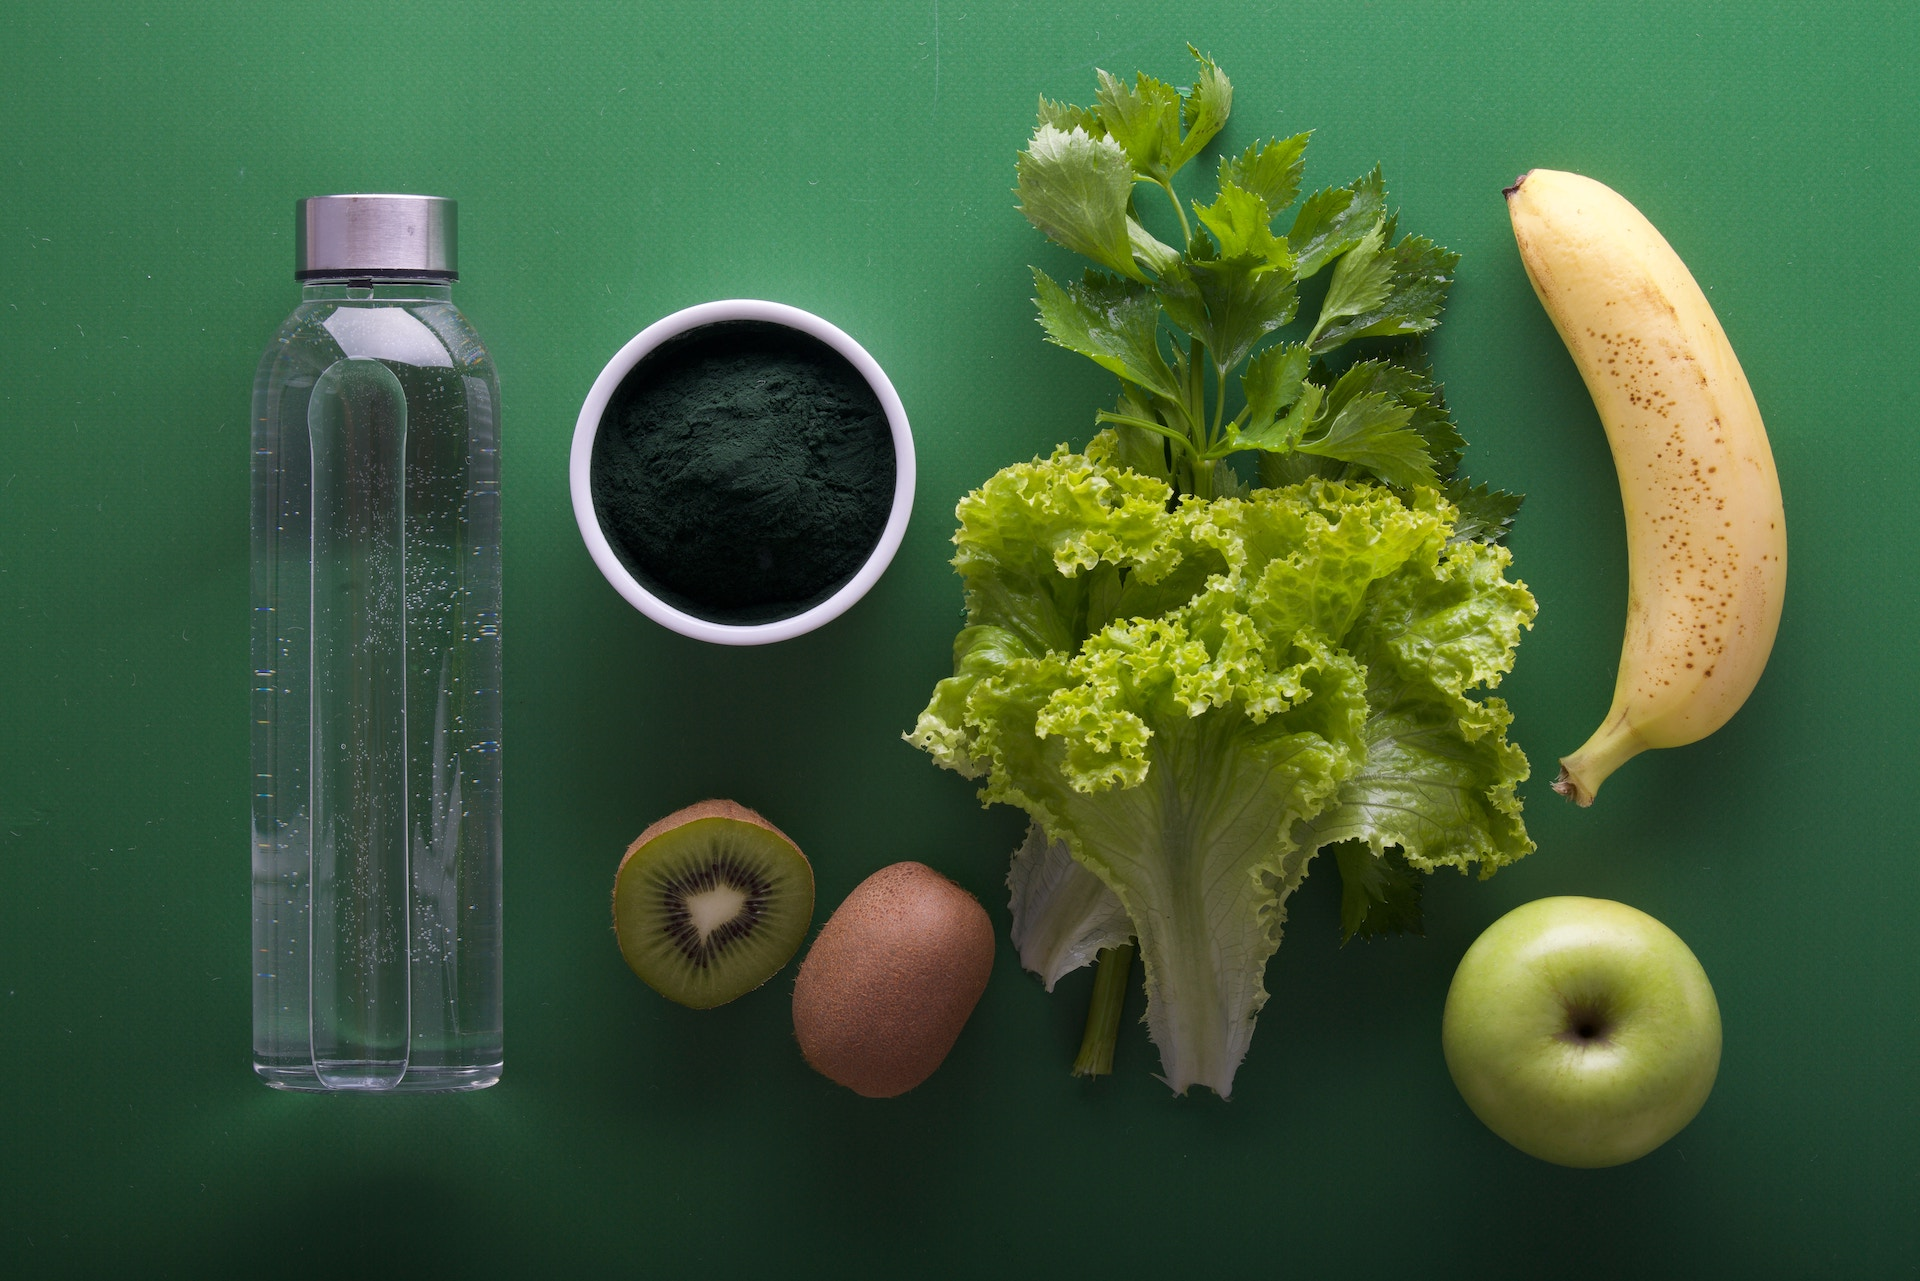 Keeping Your Nutrition on track during COVID-19